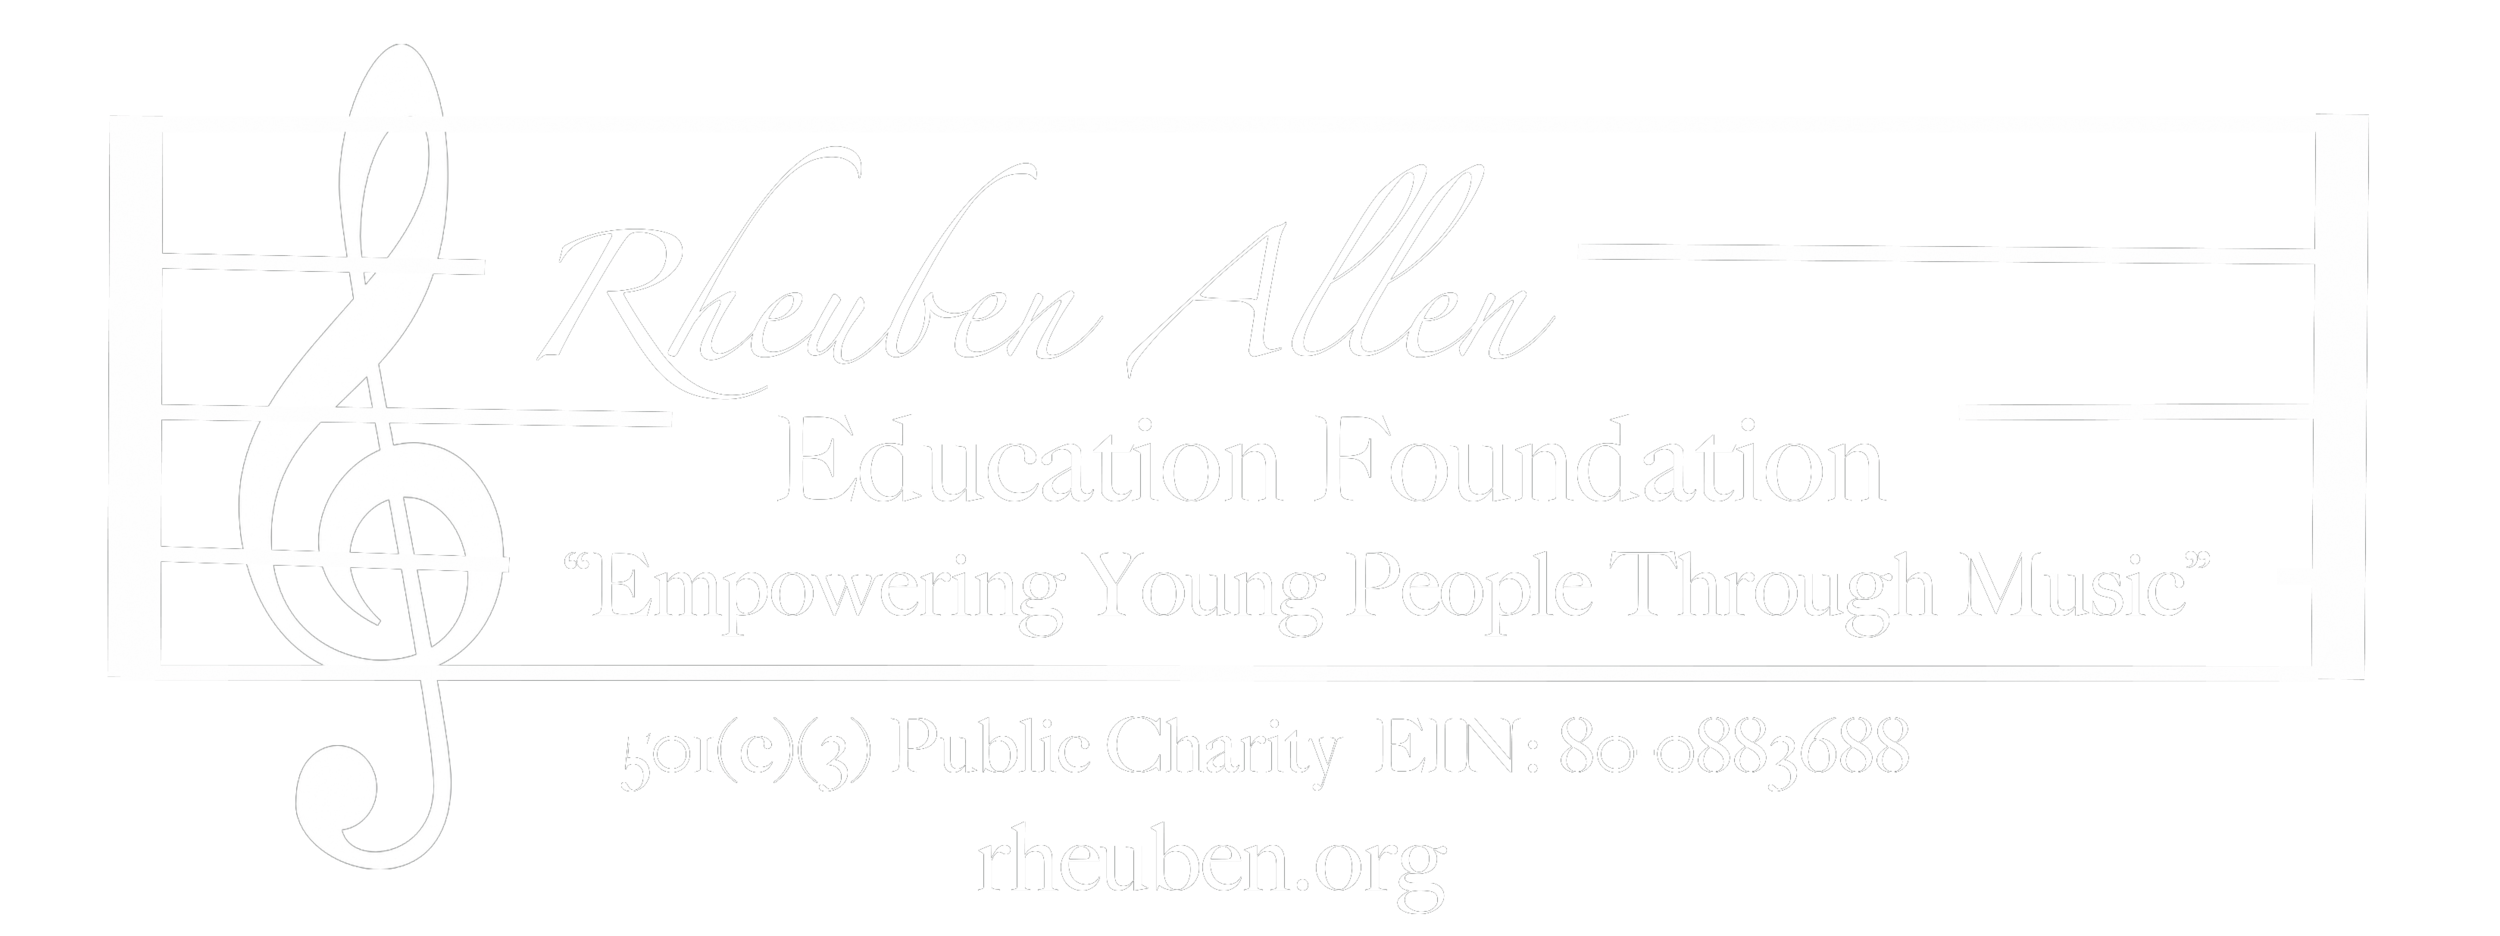 Rheuben-allen education foundation_white.png